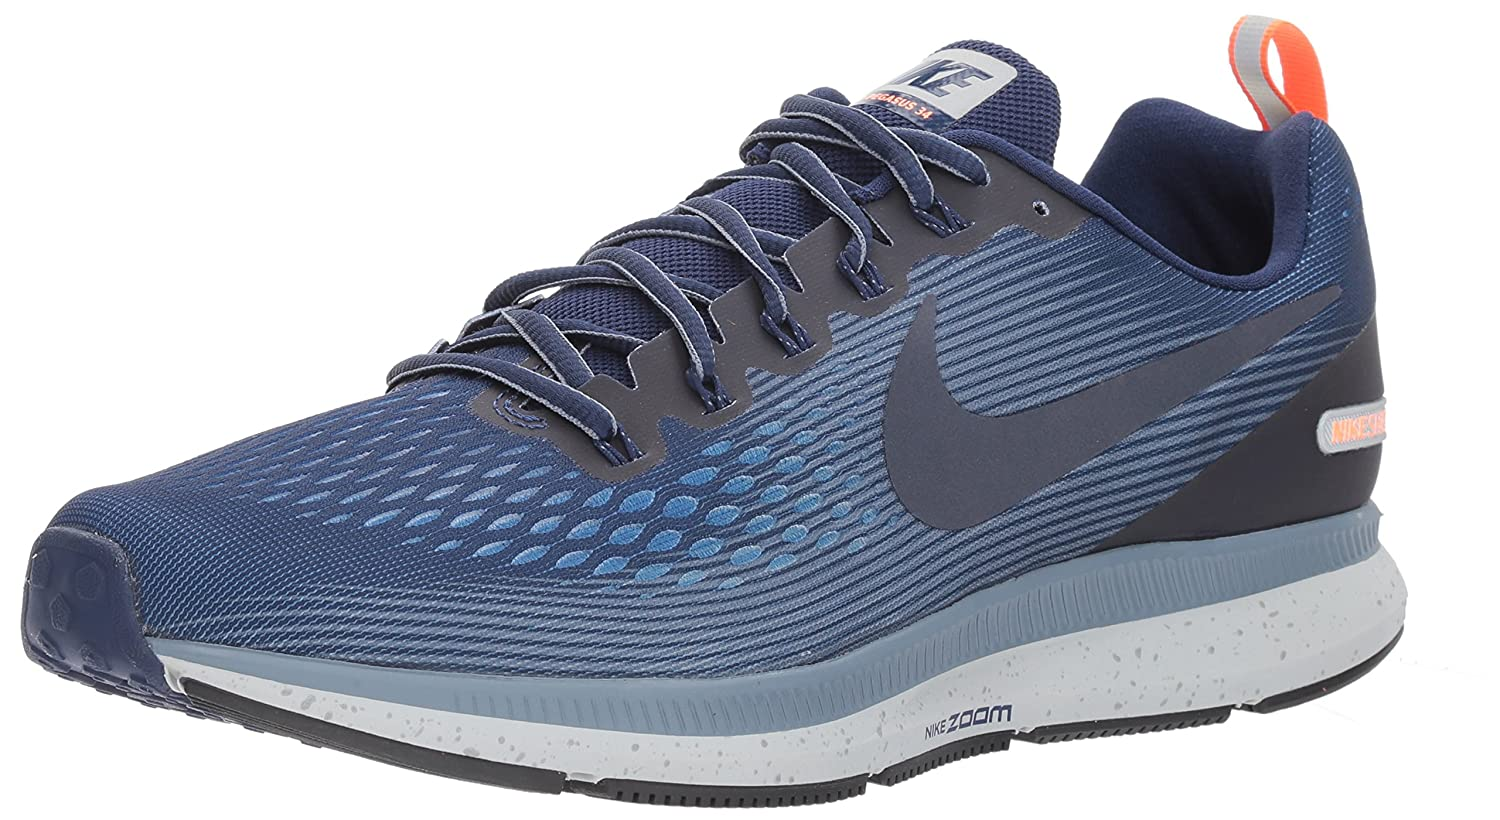 Nike Air Zoom Pegasus 34 907327 400-907327400  Buy Online at Low Prices in  India - Amazon.in f038ff3cc